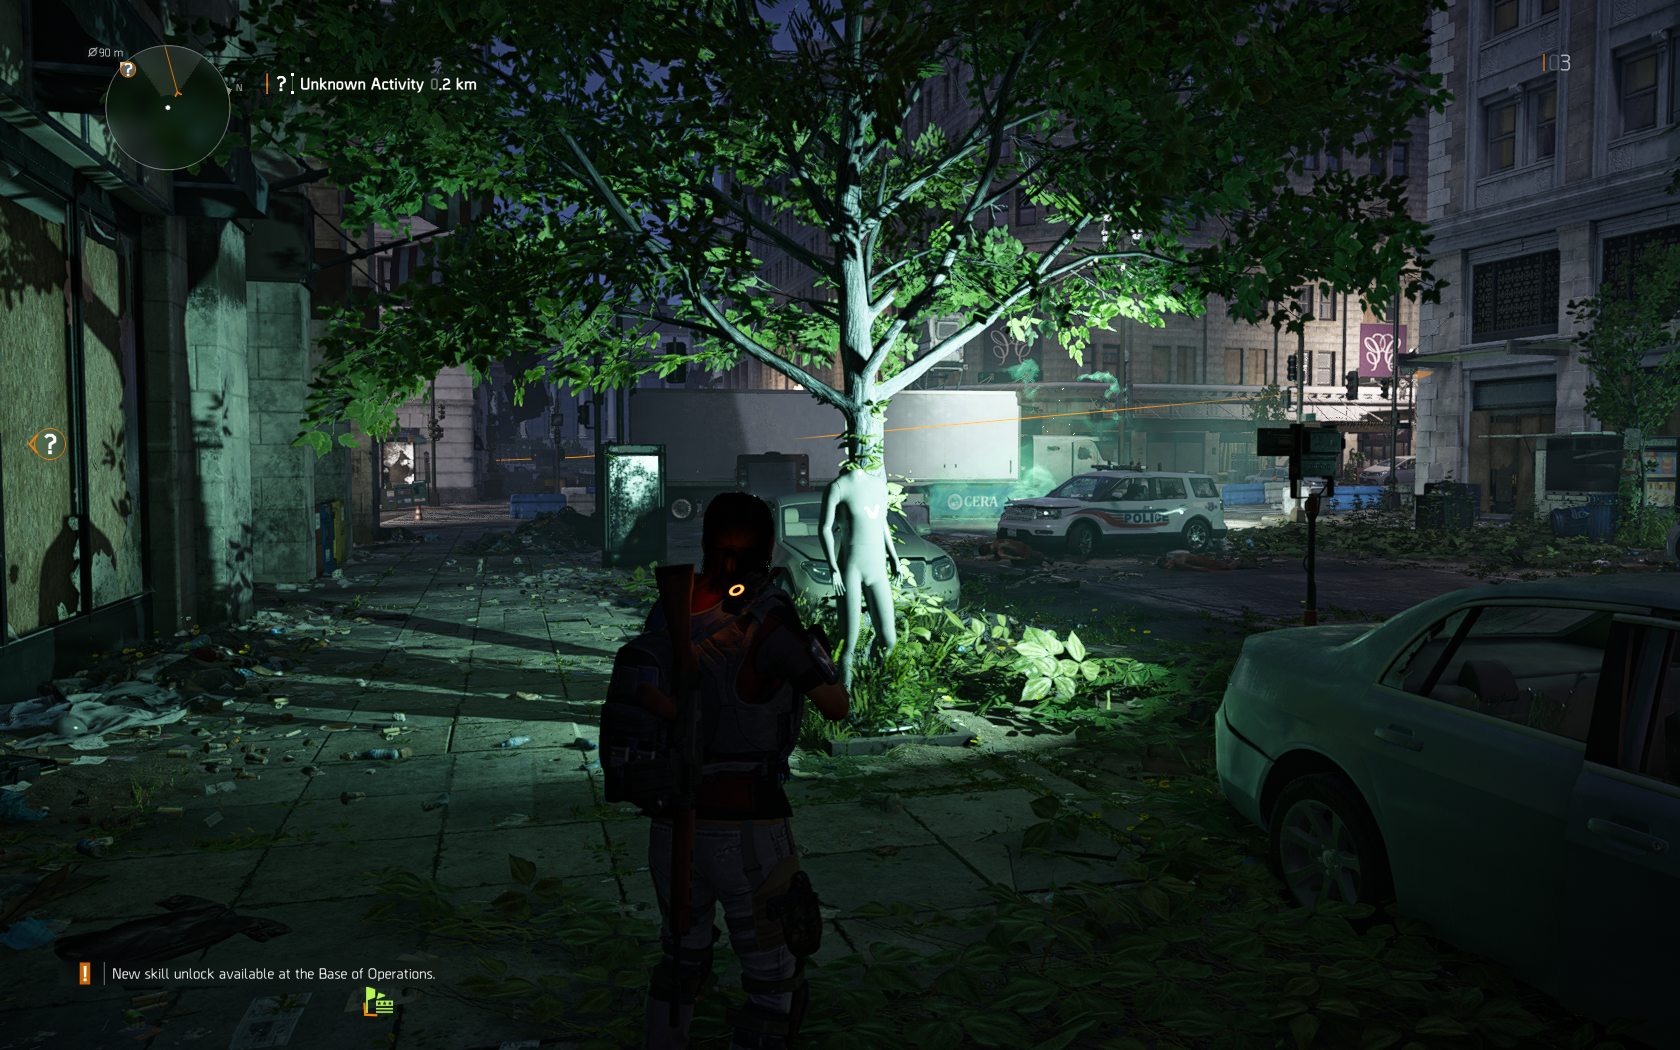 Tom Clancy's The Division 2 Screenshot 2019.03.12 - 11.59.30.97.png